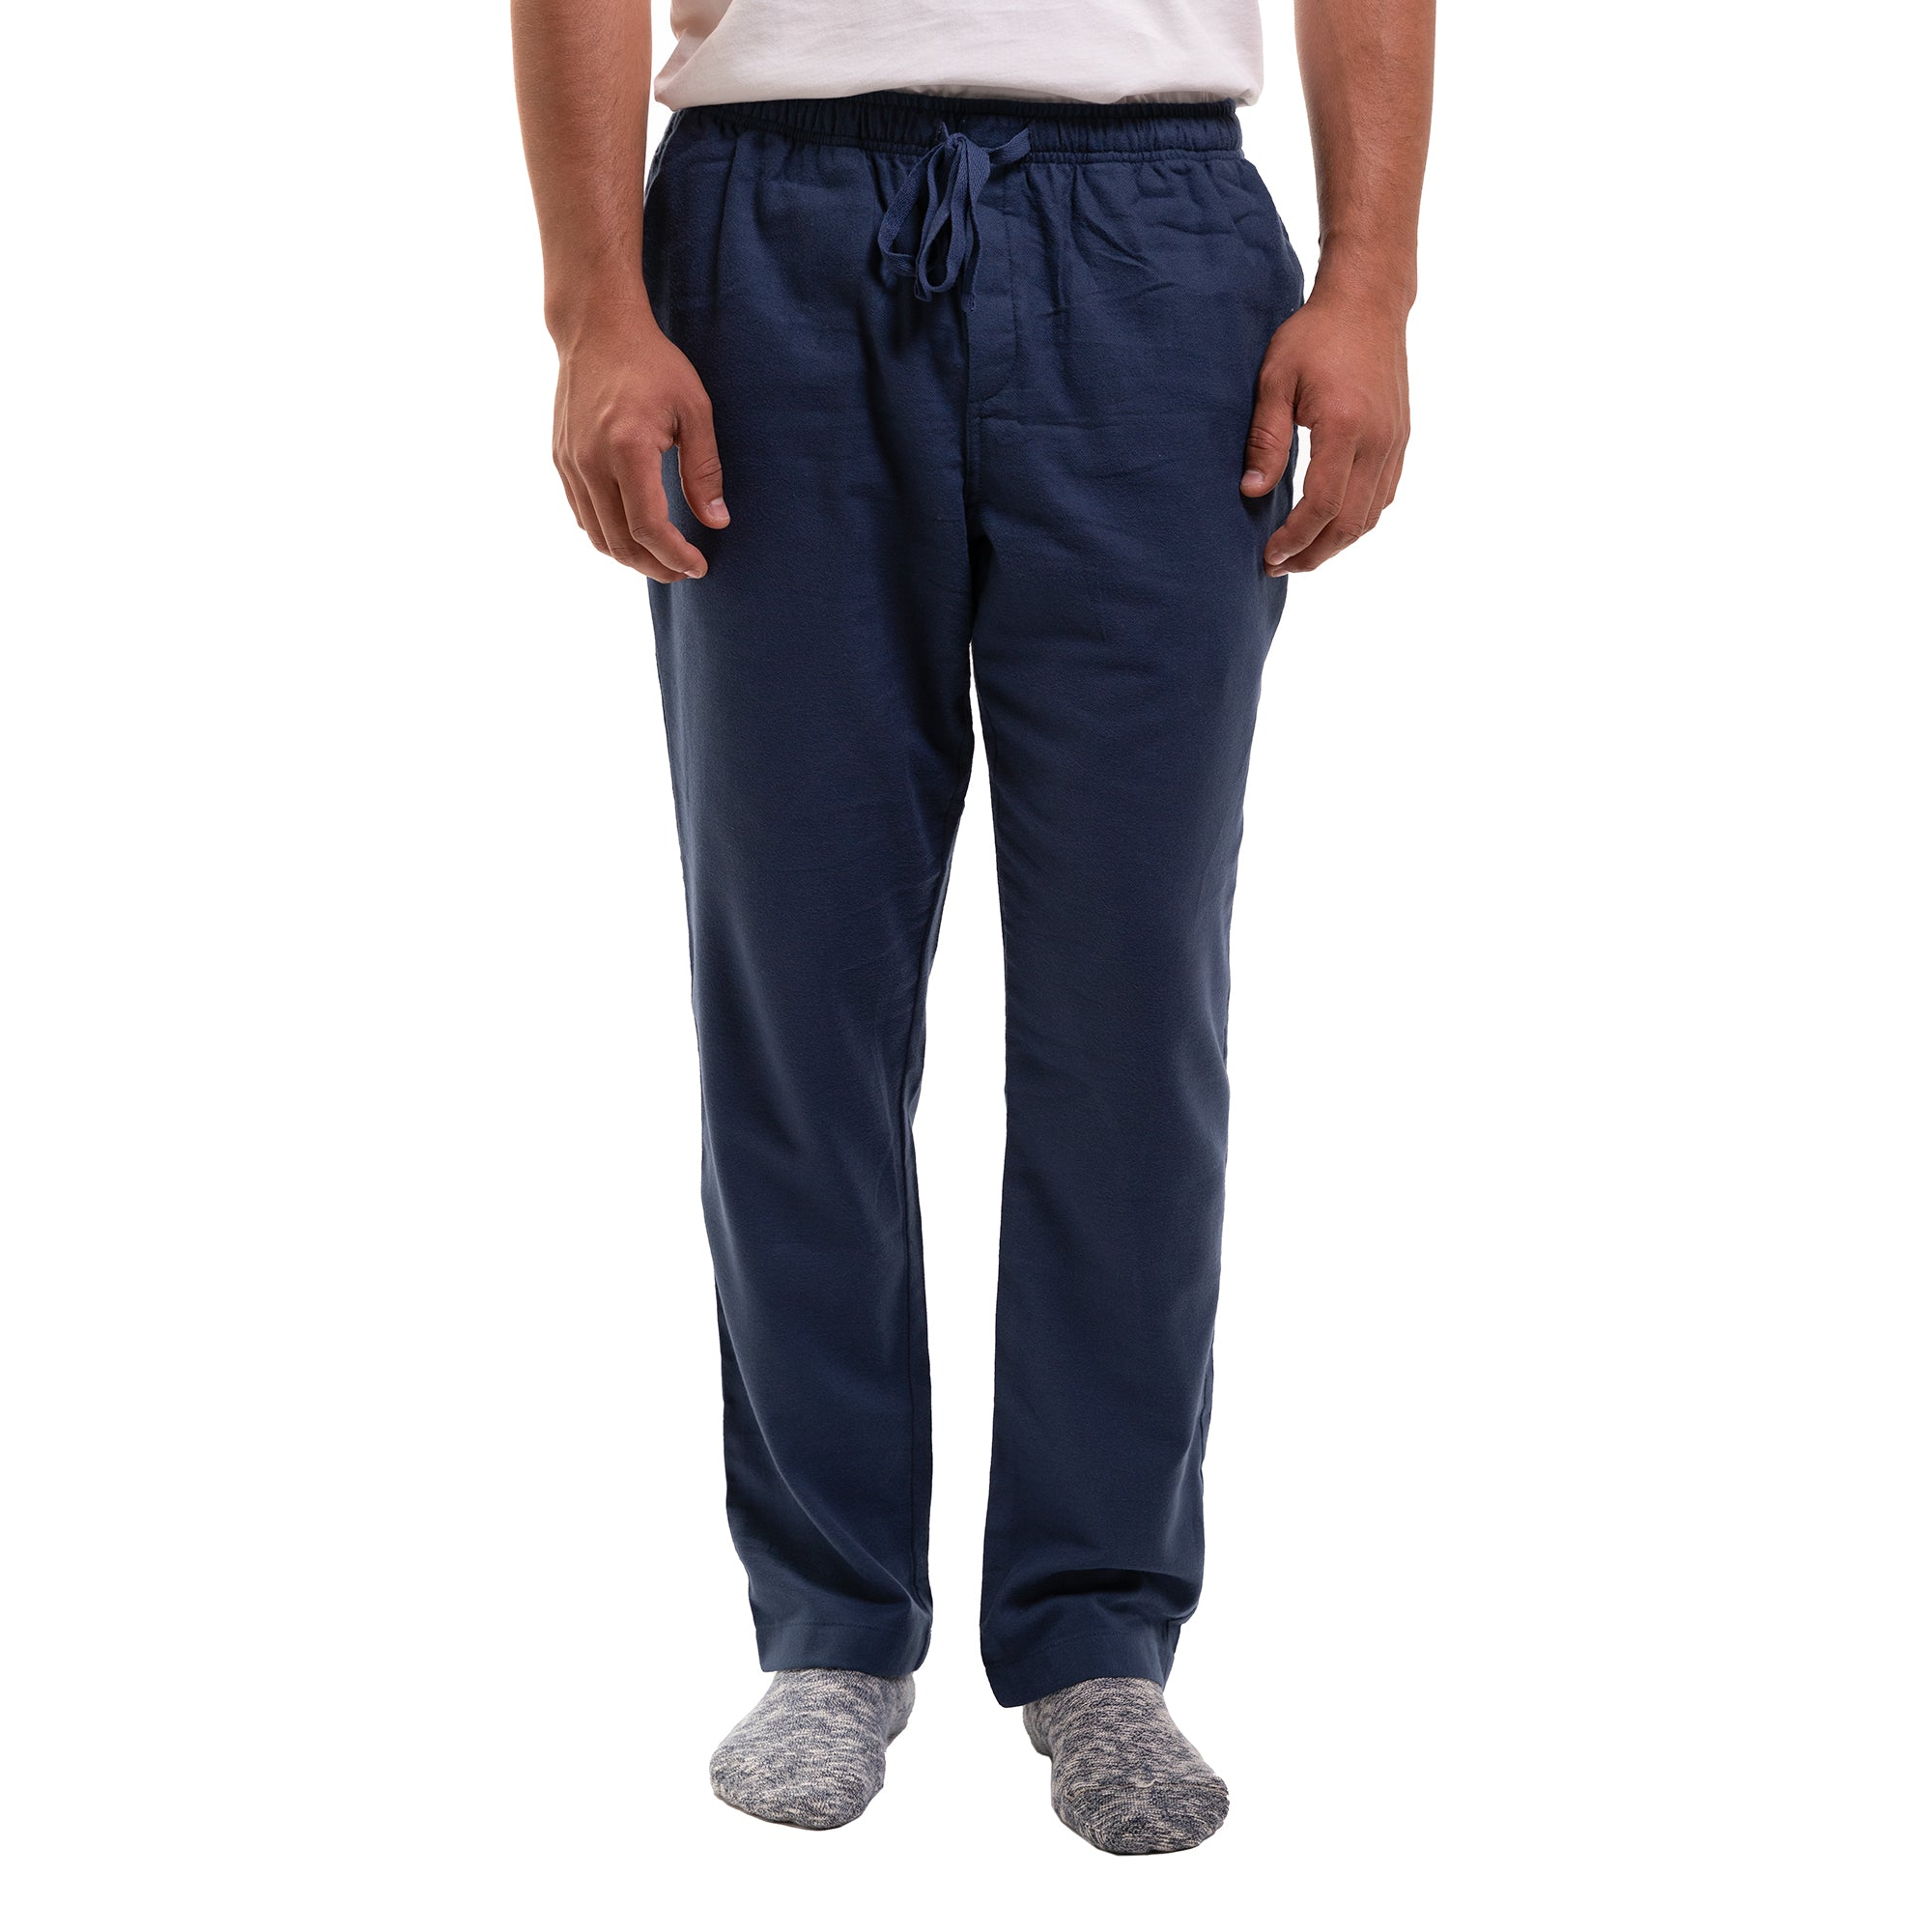 Pajama Pants - Navy Flannel